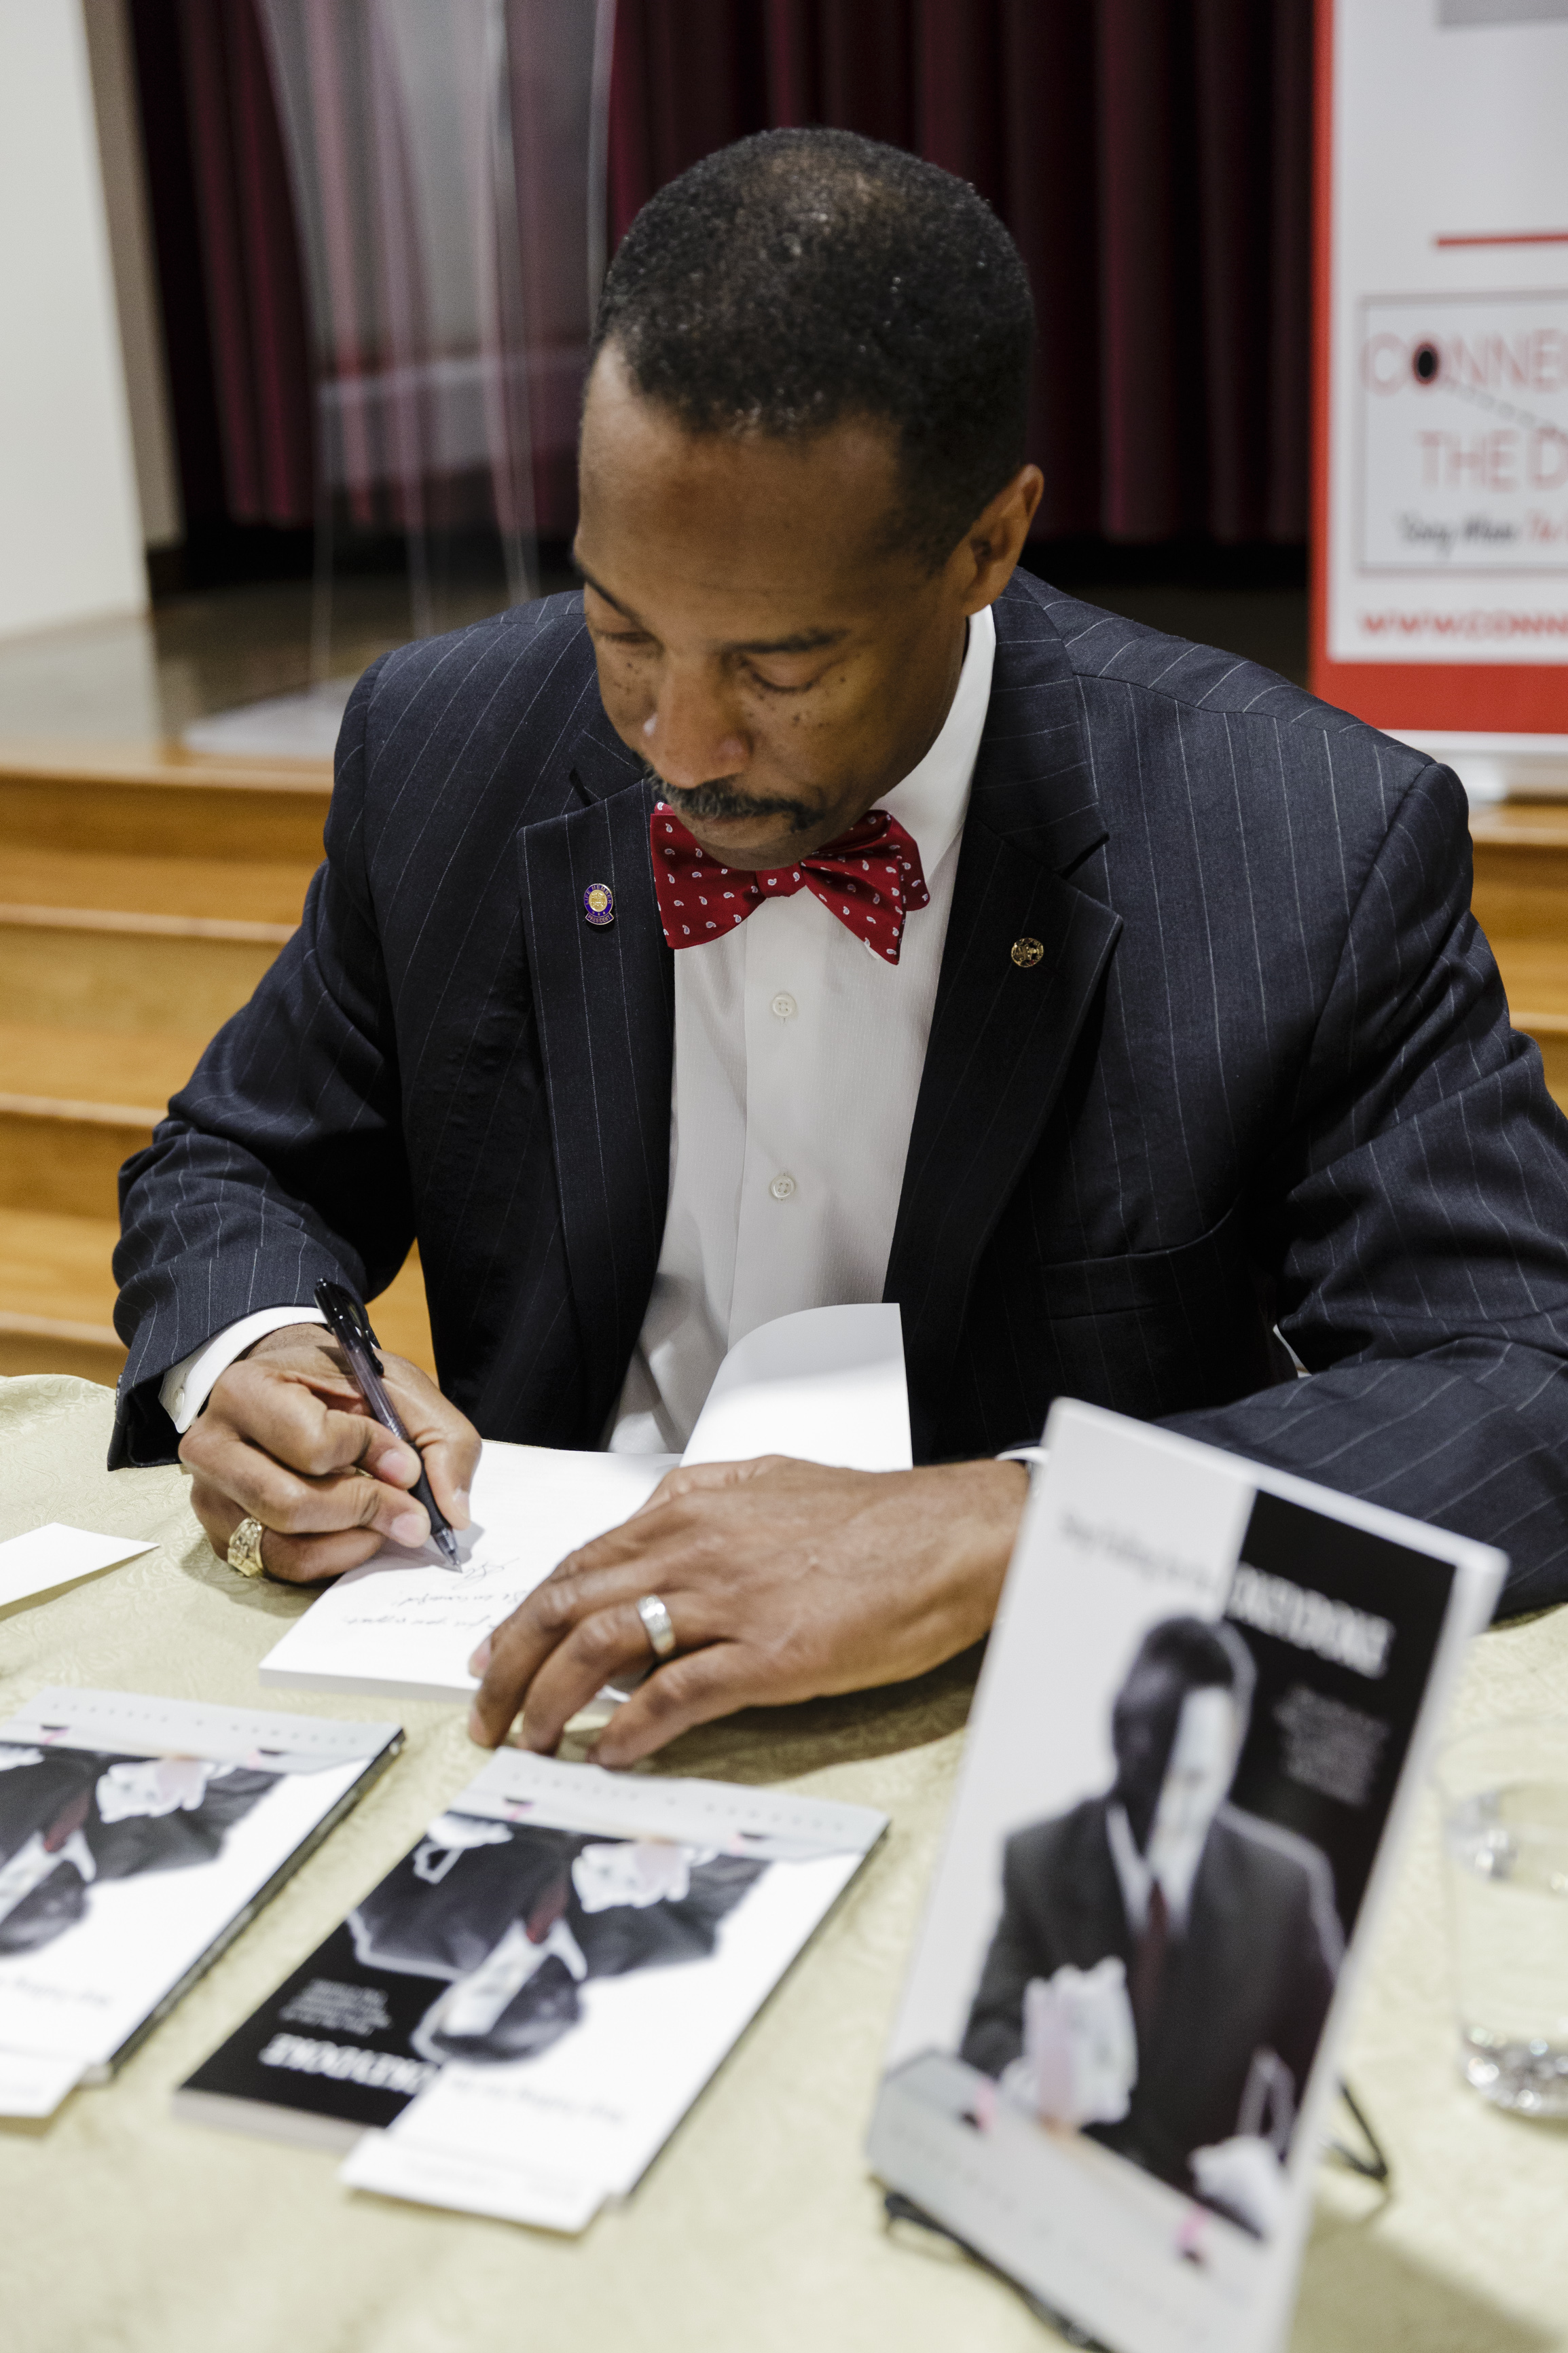 Book signing in Washington, DC July 2017